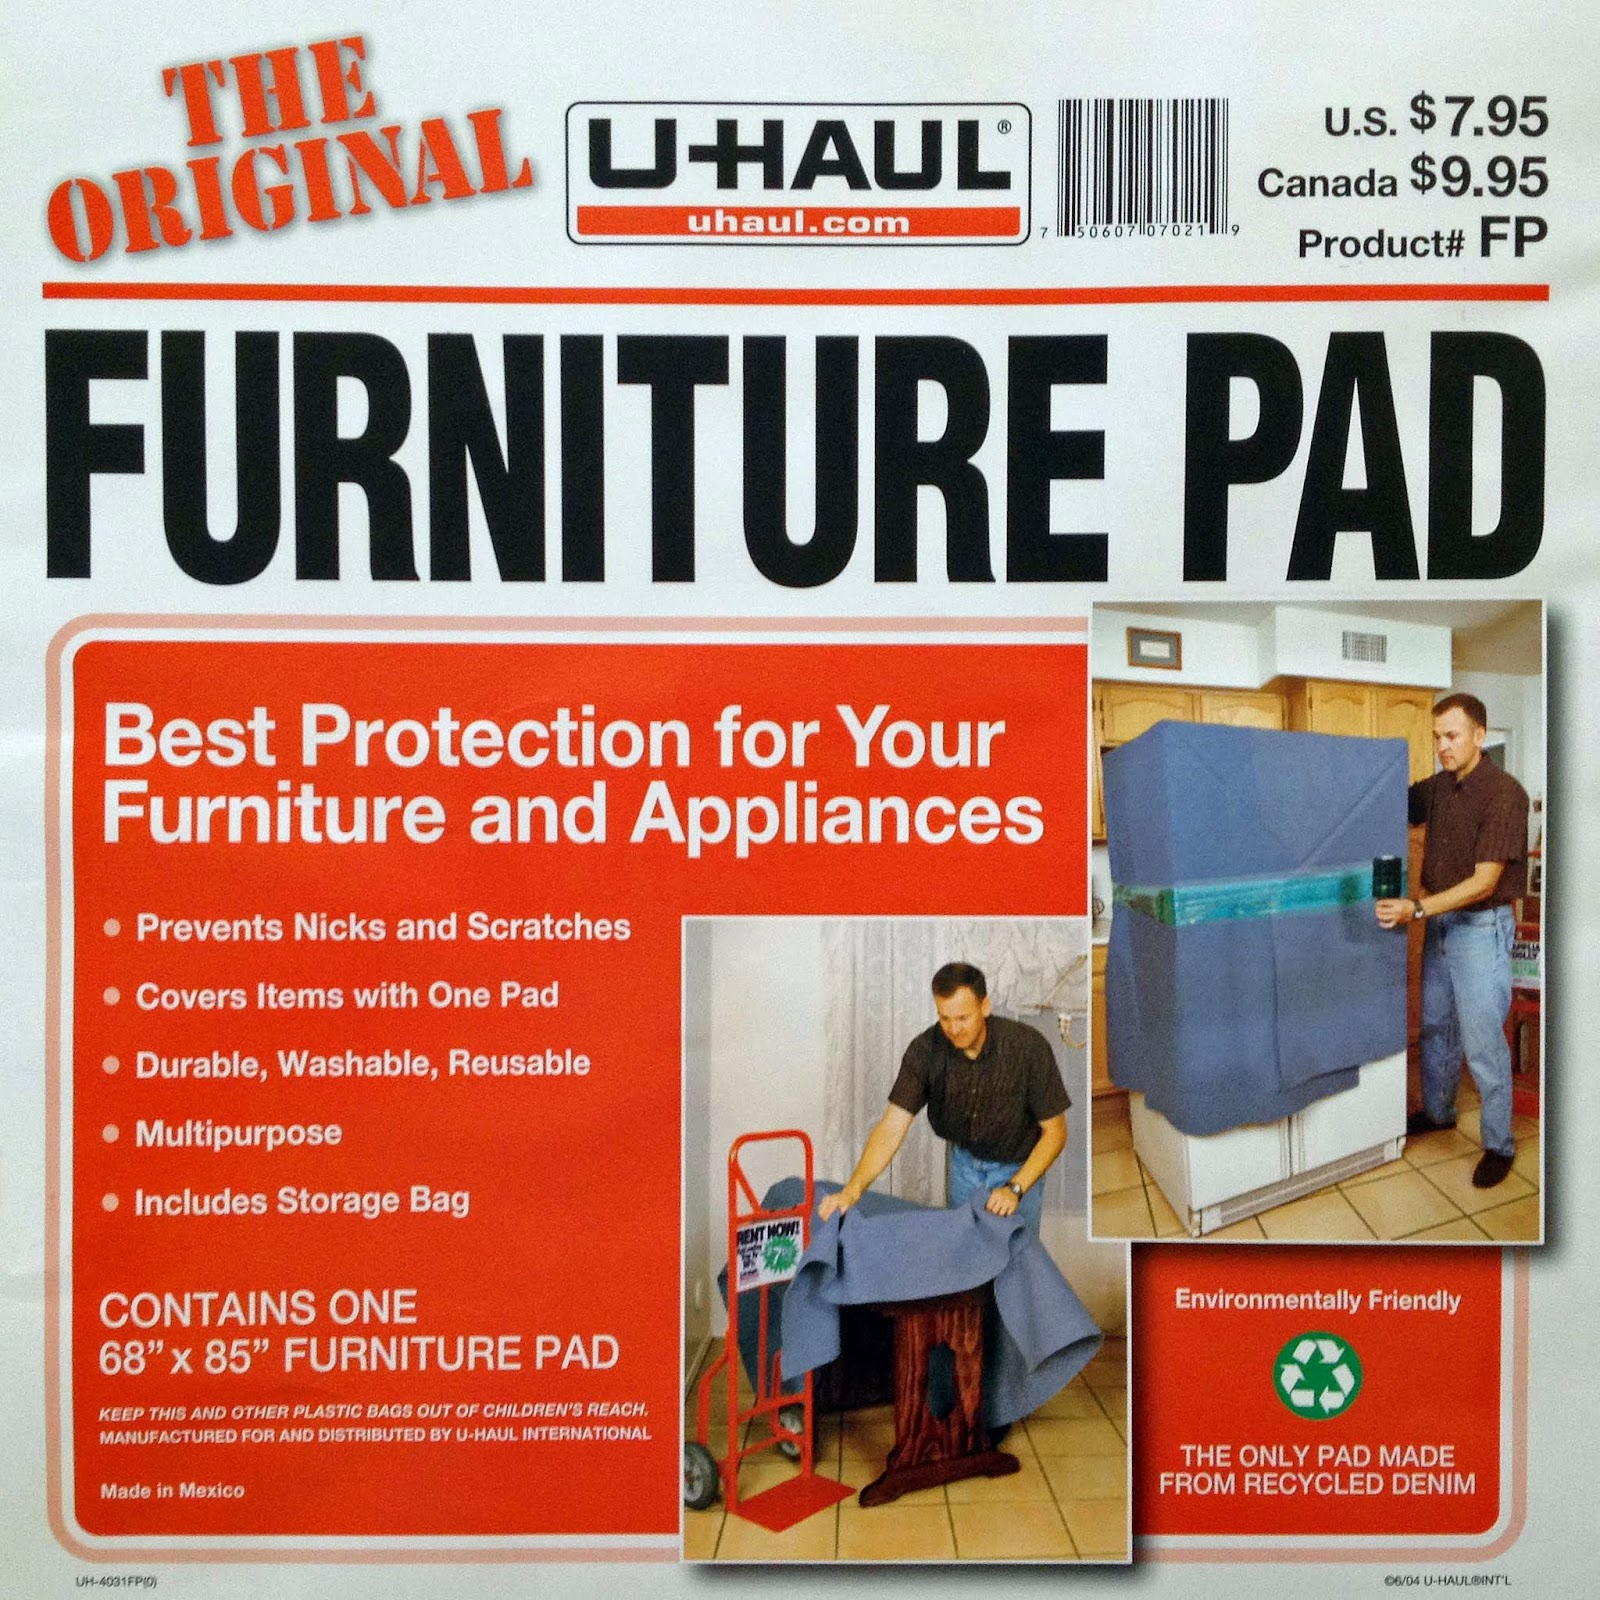 U-Haul Furniture Pad Label